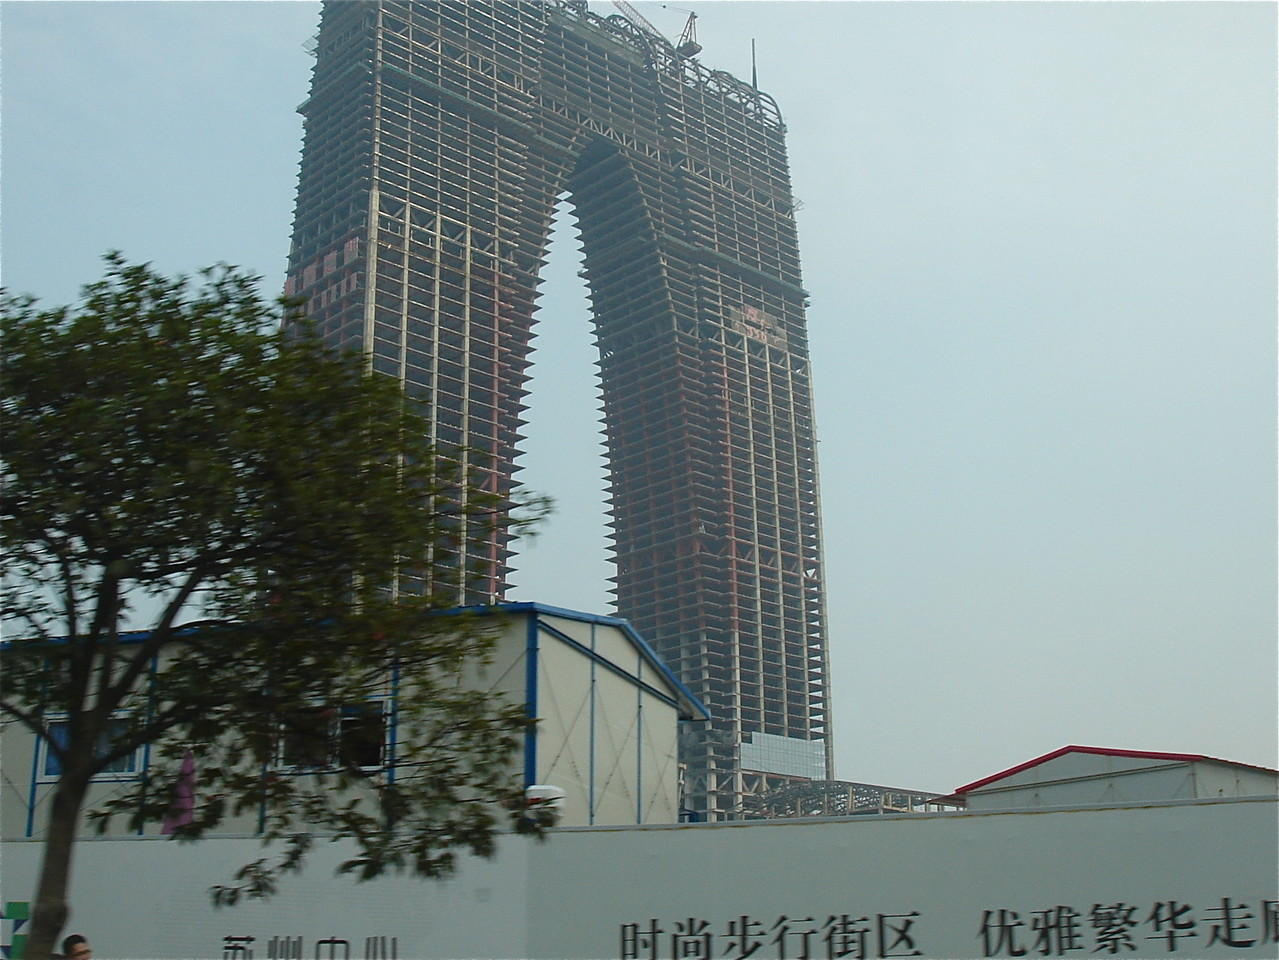 Unusual building being constructed, Suzhou